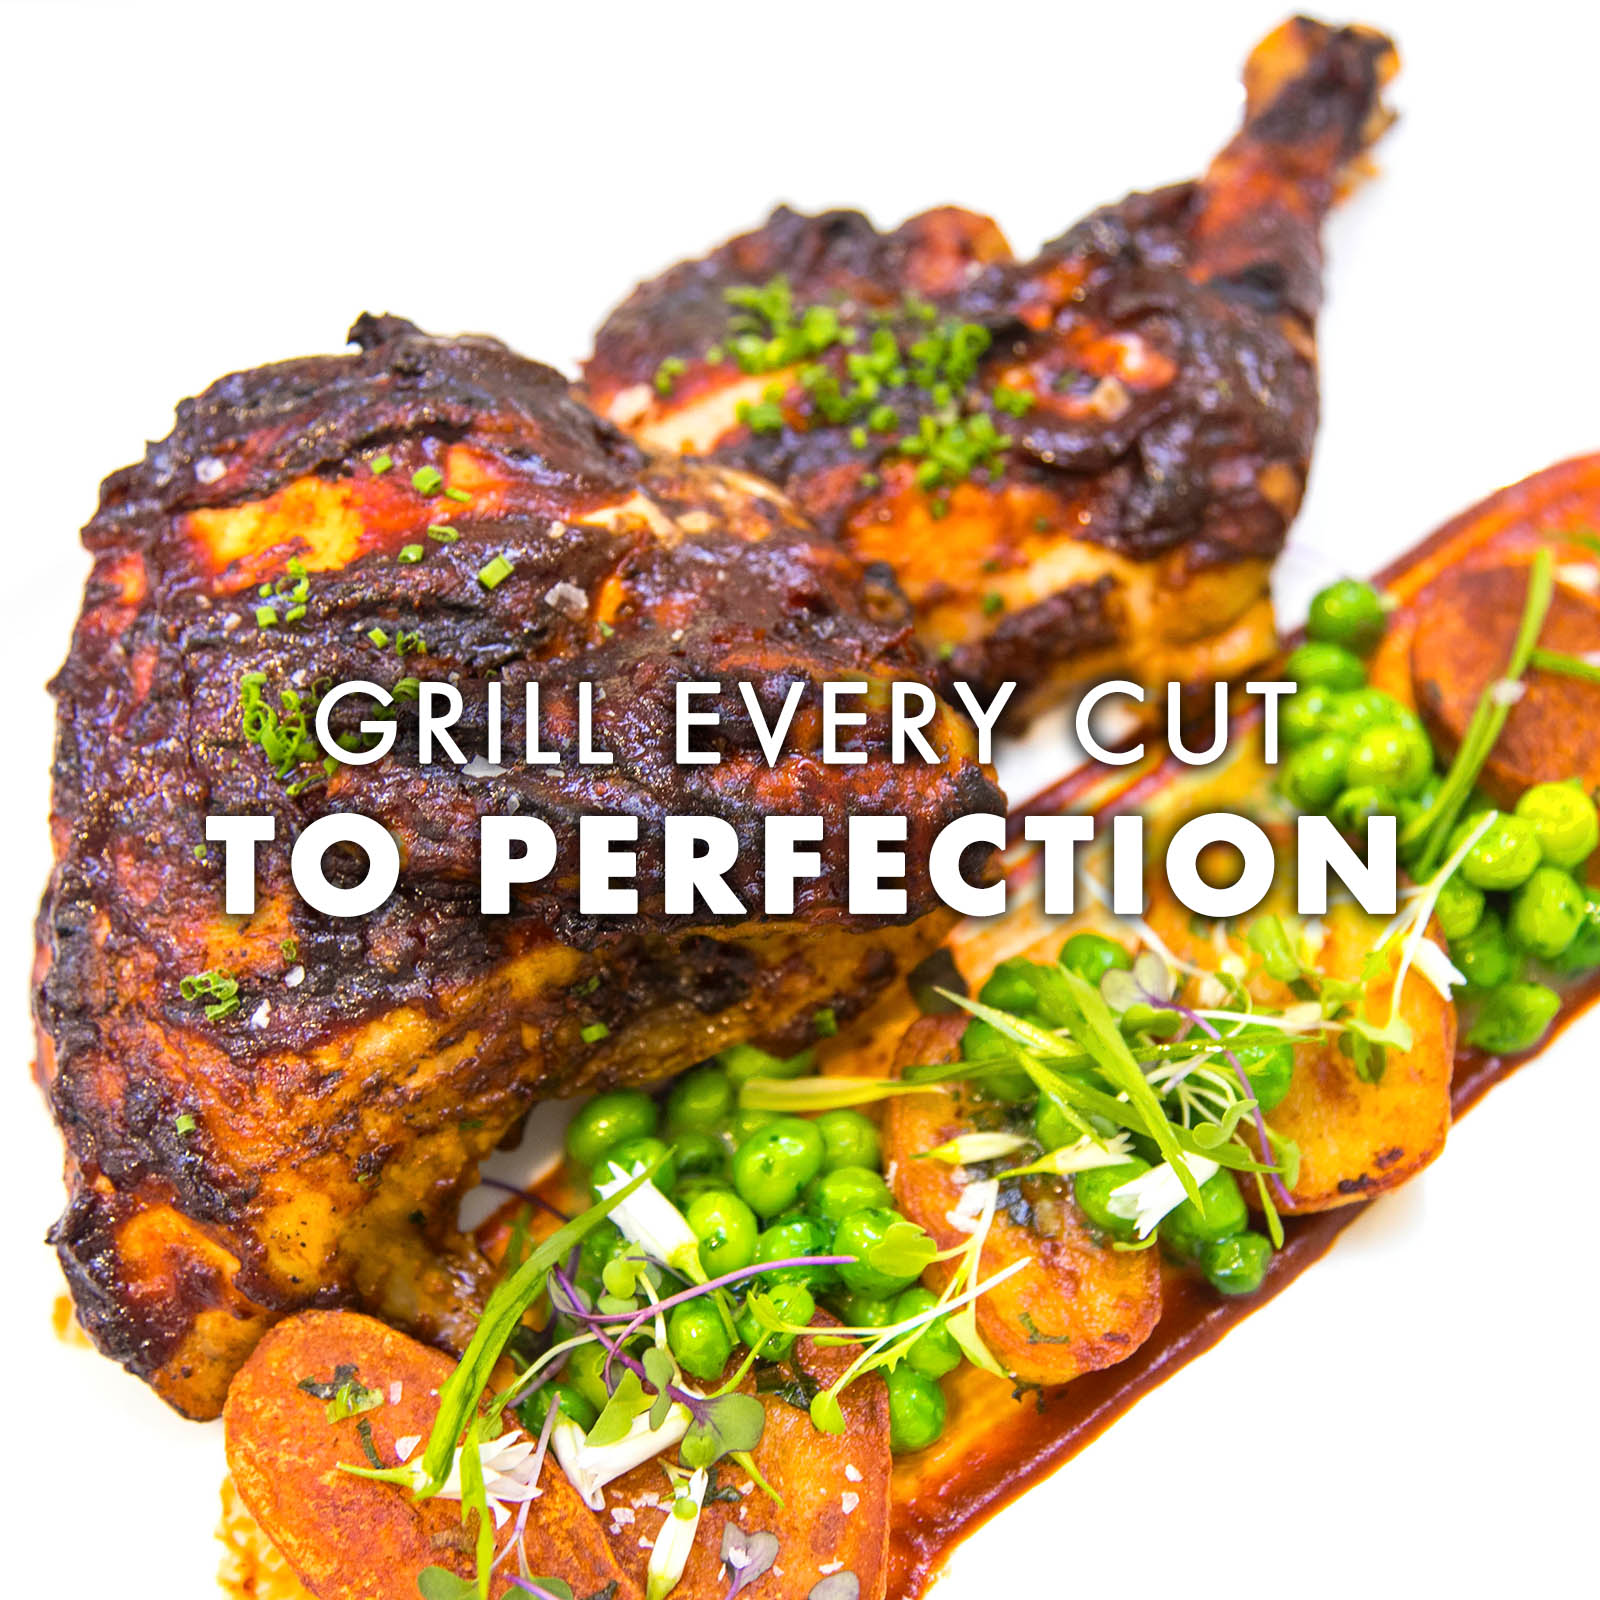 Grill Every Cut to Perfection-Thumbnail-2.jpg